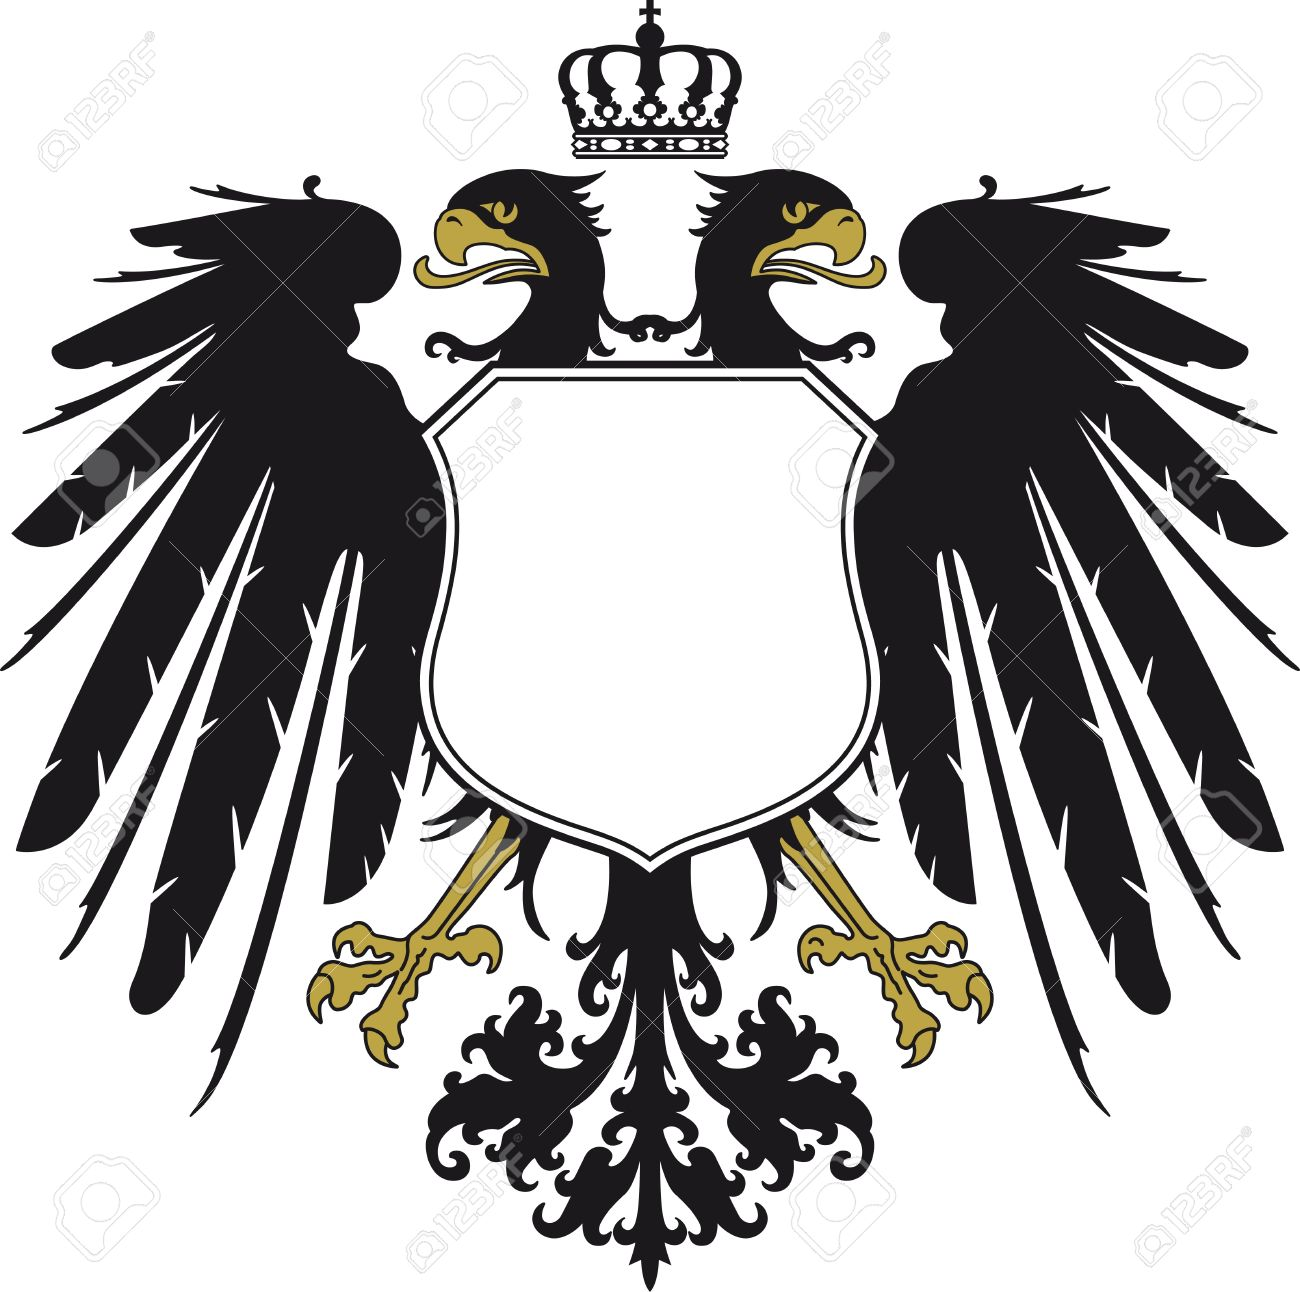 Double eagle clipart png freeuse Double-headed Eagle With Crown Royalty Free Cliparts, Vectors, And ... png freeuse